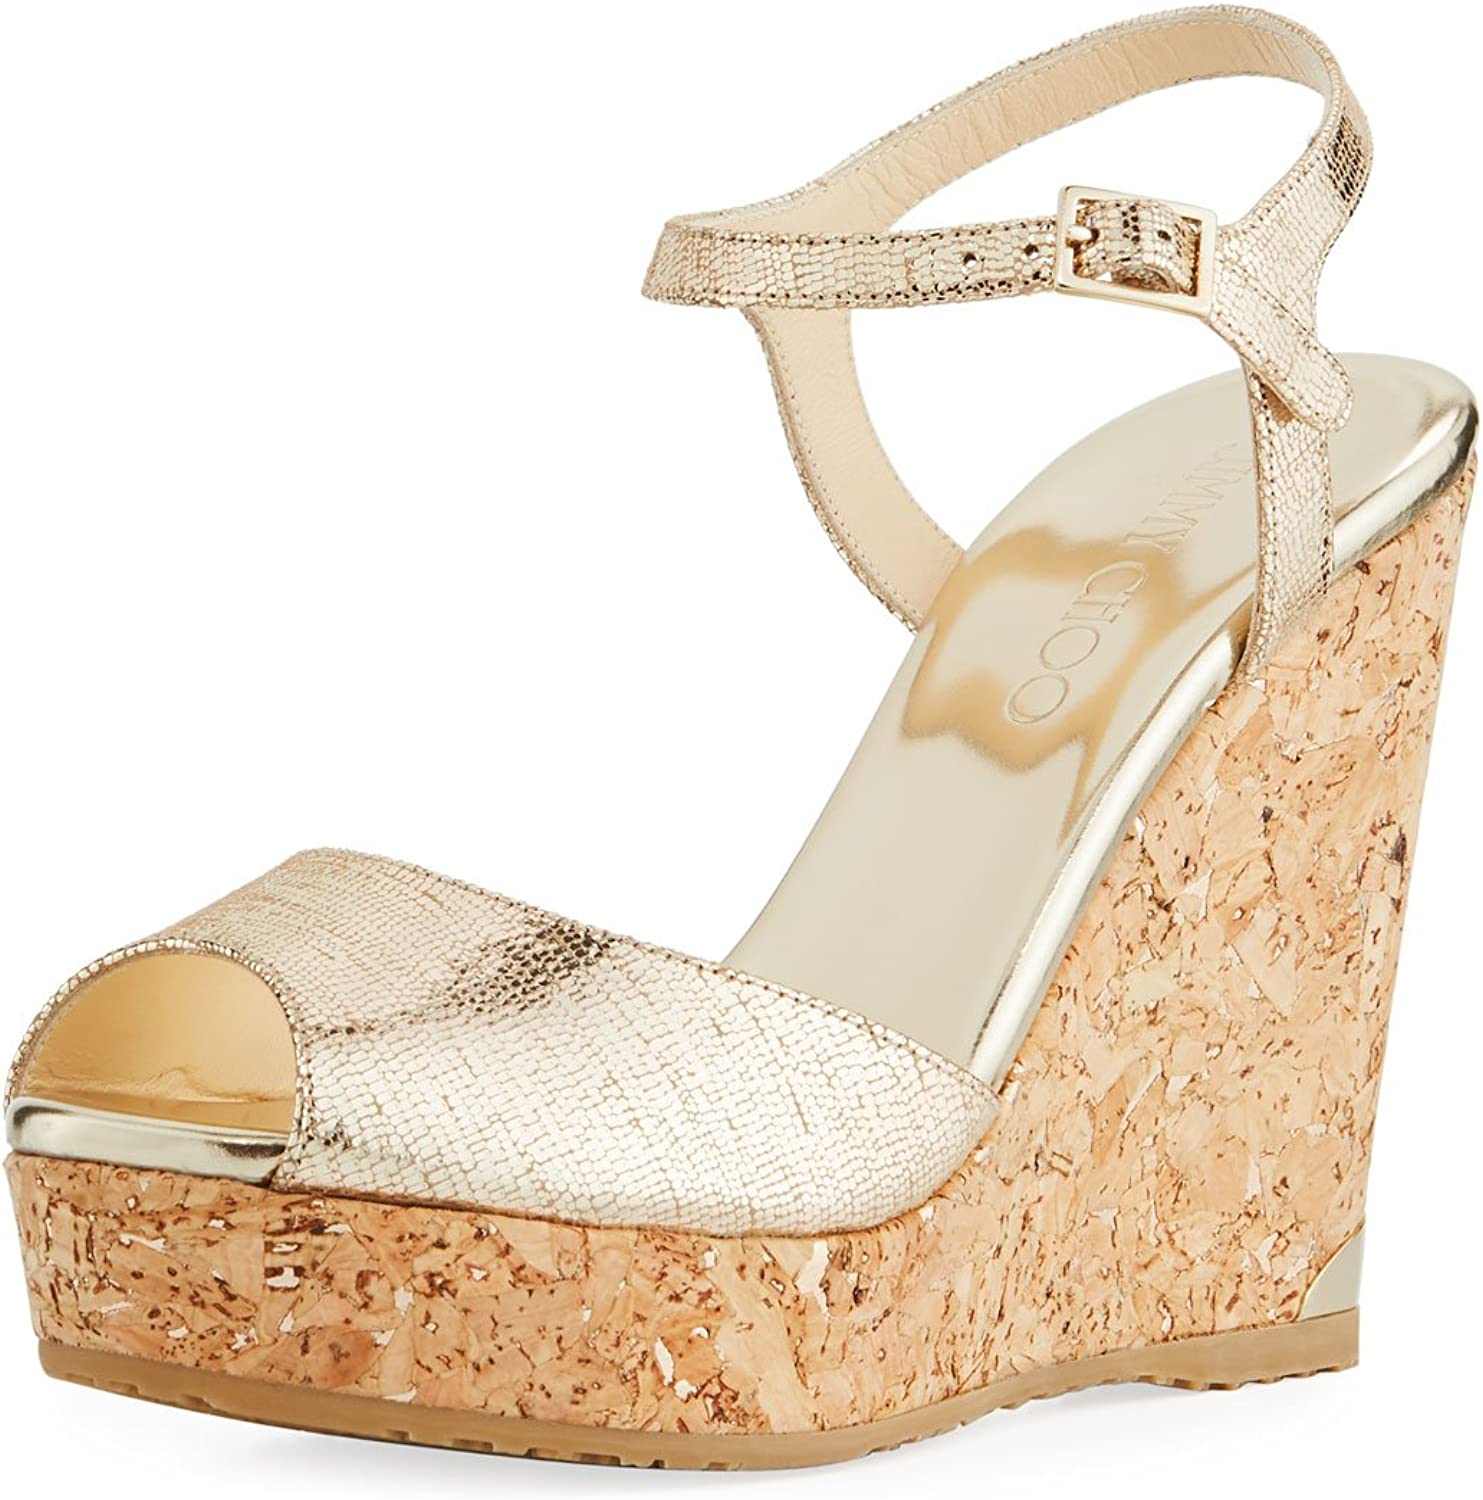 SILVER GOLD GLITTER METALLIC WEDGED PLATFORMS WEDGES ANKLE BOOTS HIGH HEELS SIZE